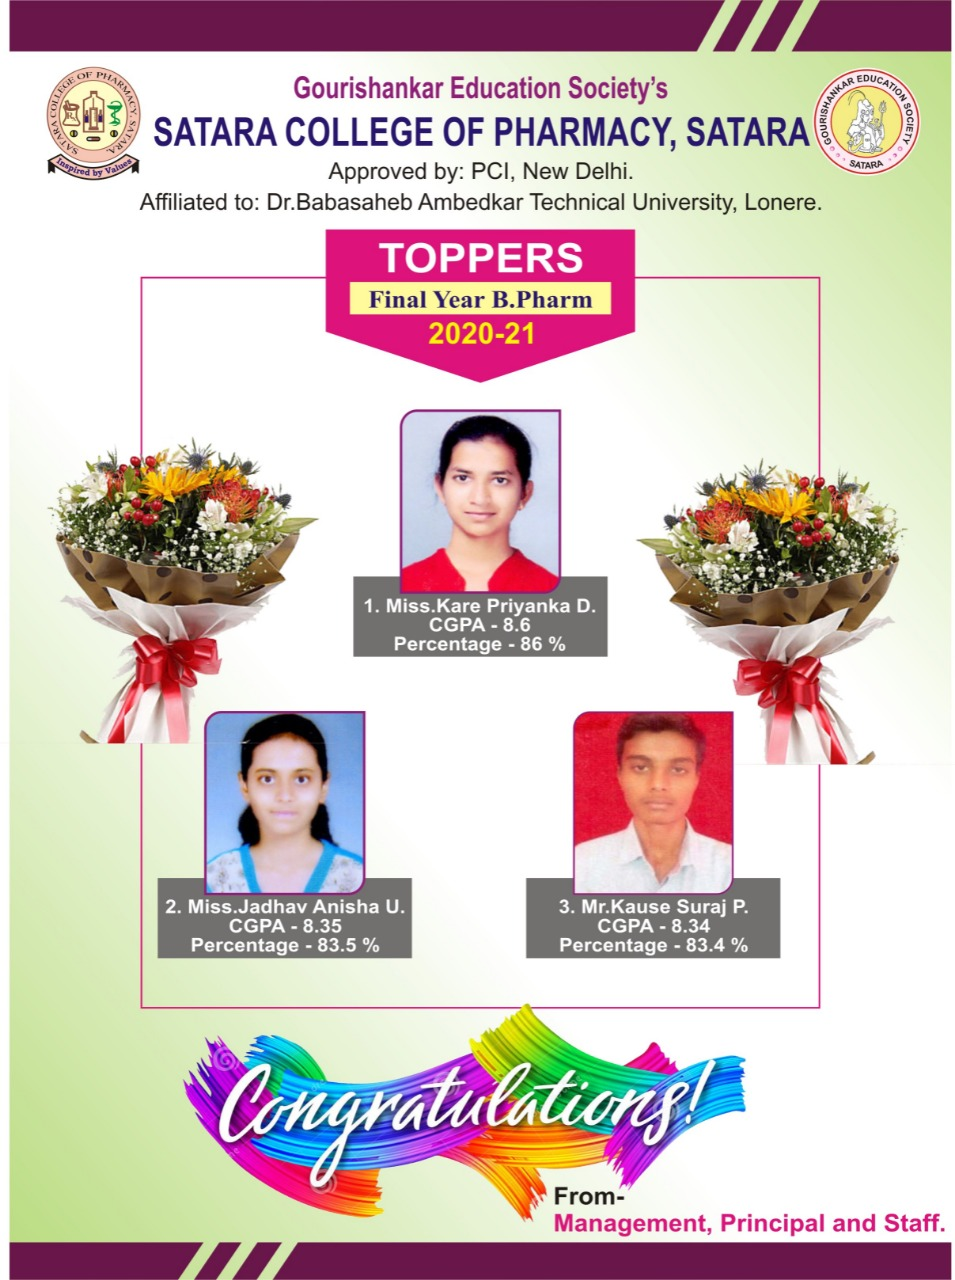 Final Year B.Pharmacy Toppers